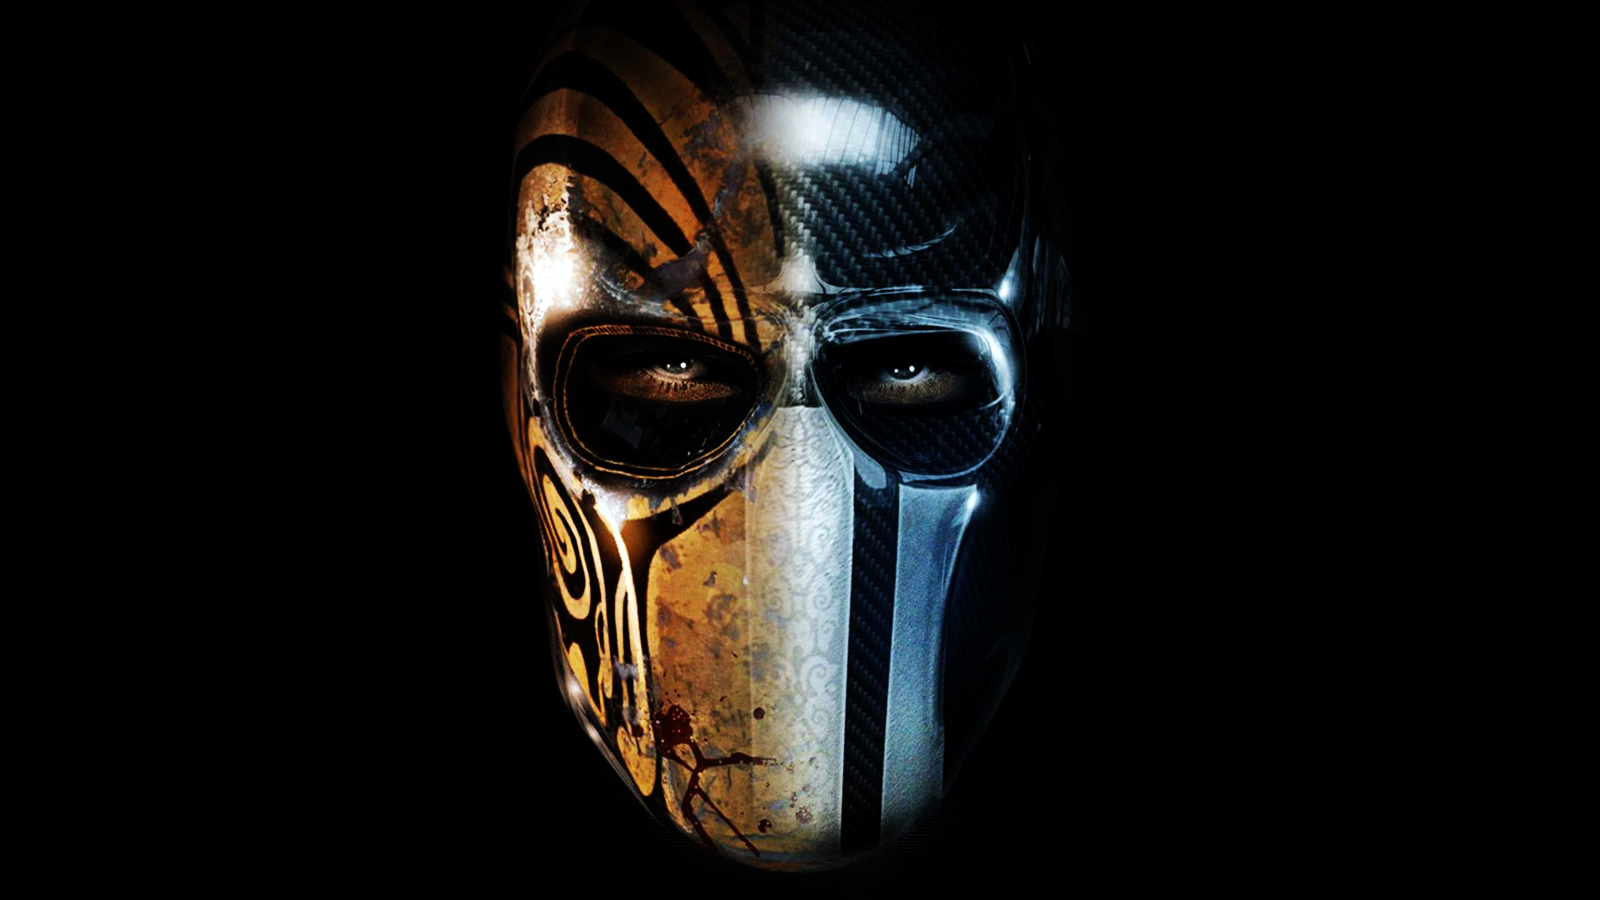 pic new posts: Wallpaper Army Of Two